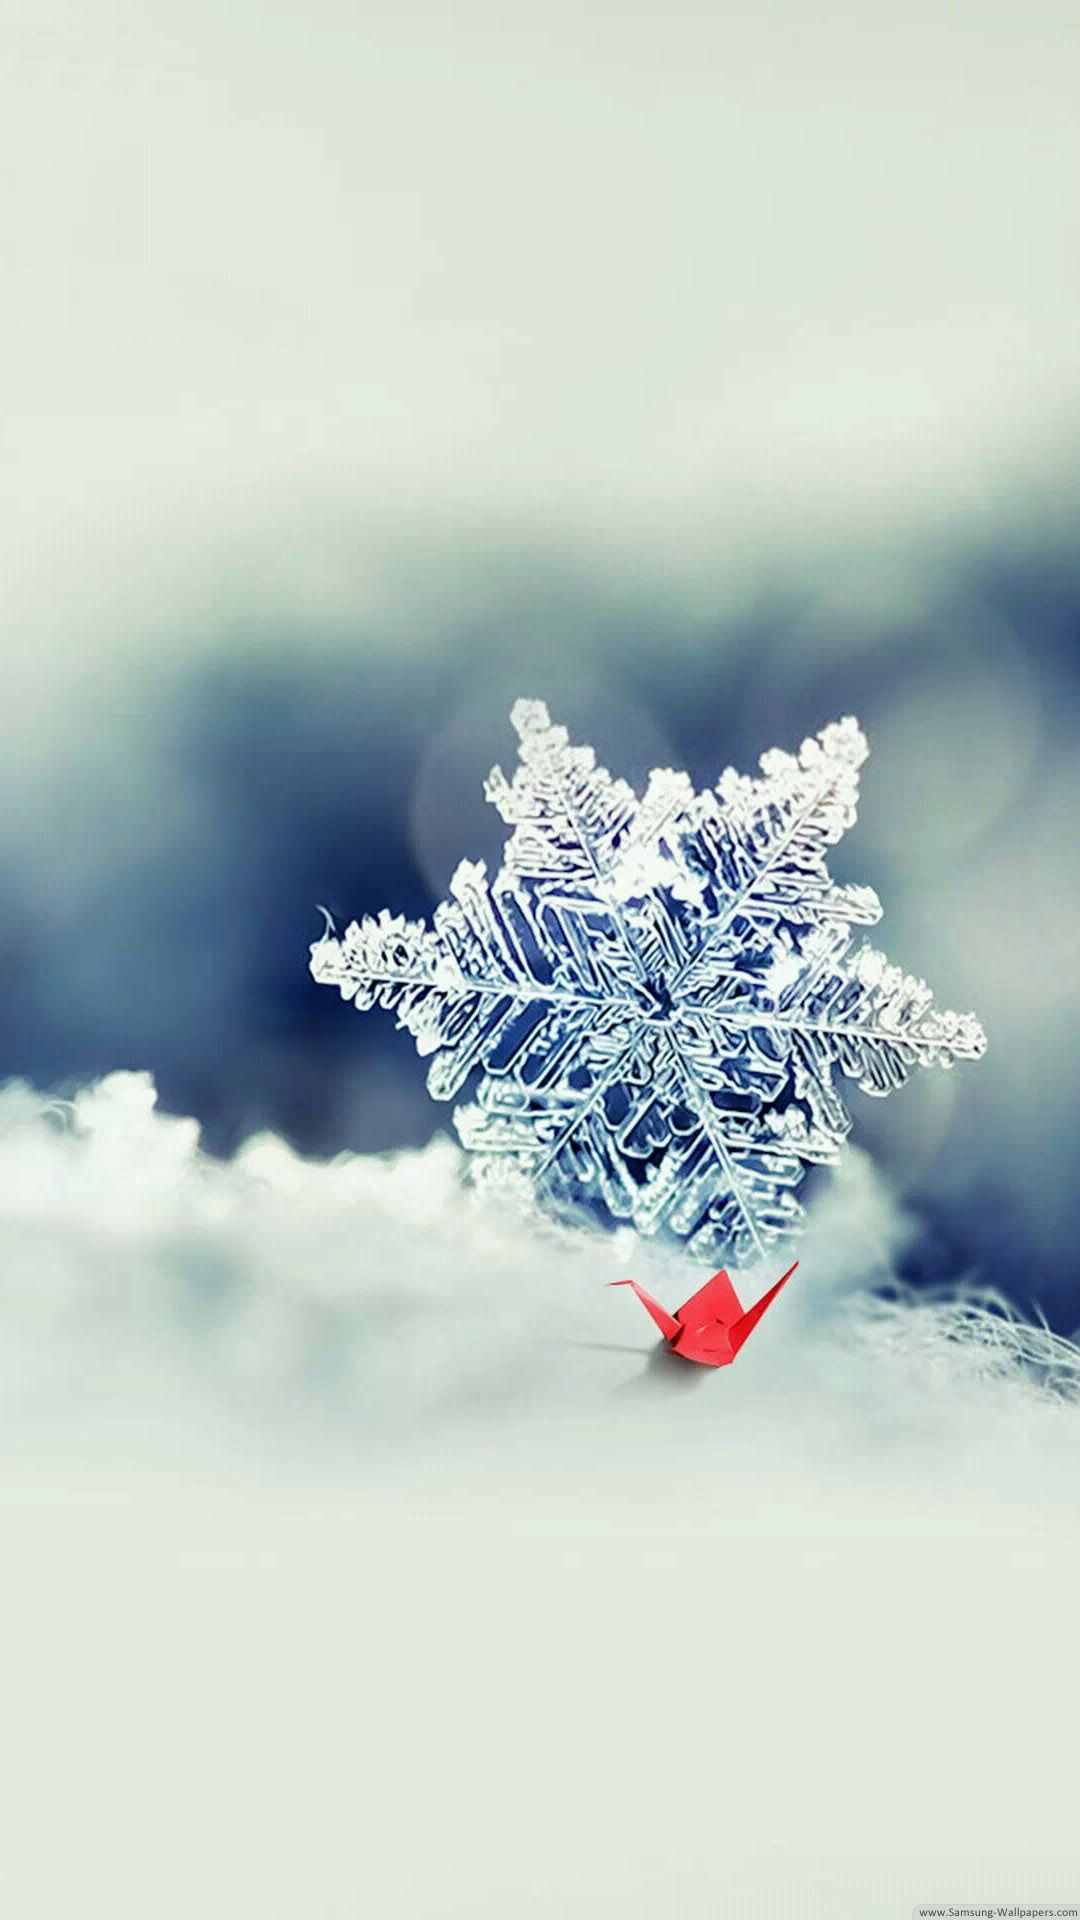 Snowflake Origami Crane Snowflake Wallpaper Cool Pictures For